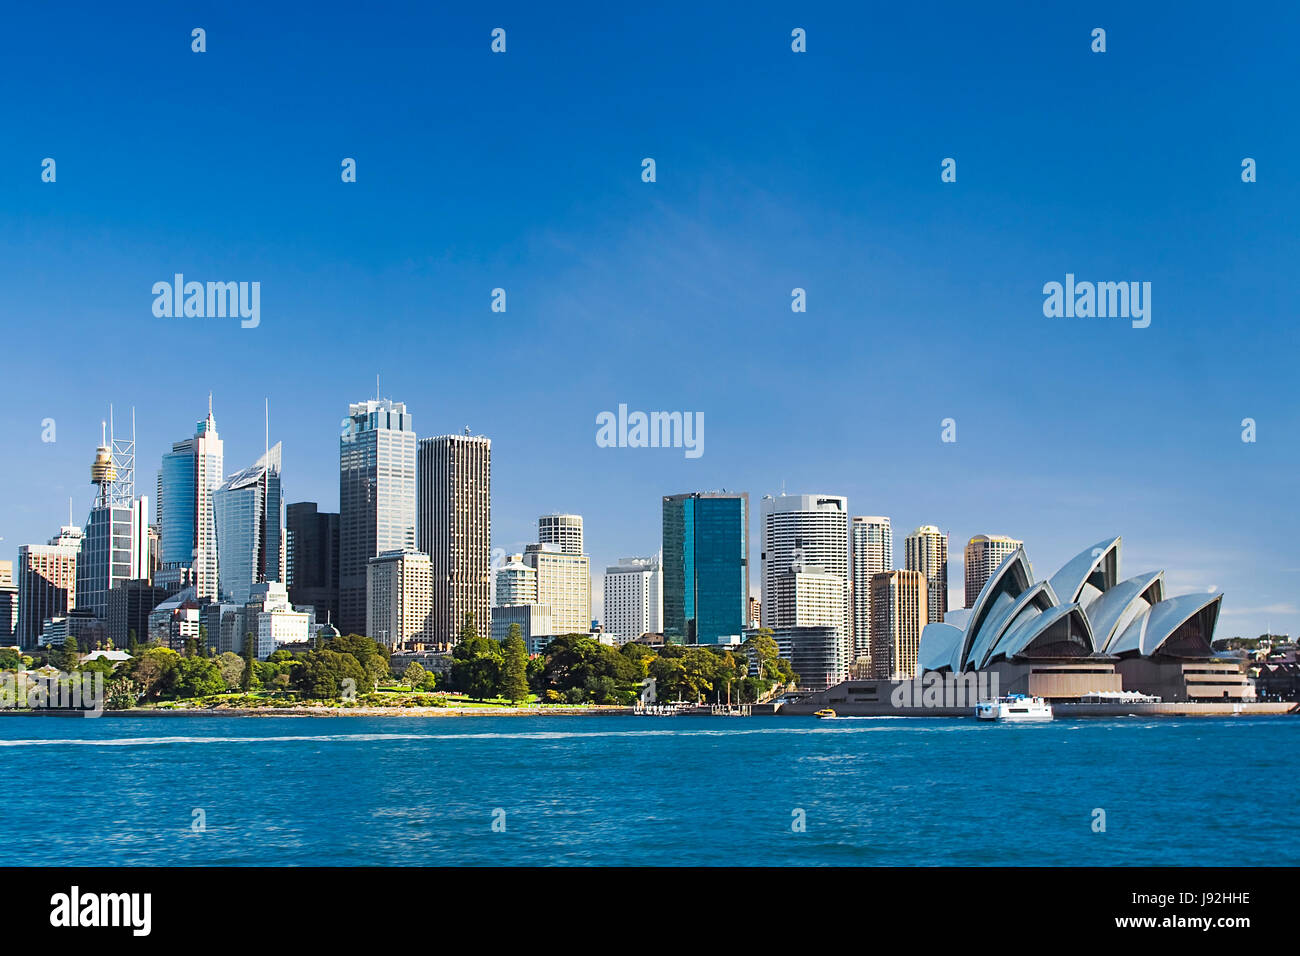 Sydney Australia view from ferry to royal botanic garden, City CBD and downtown houses on a sunny winter day. - Stock Image